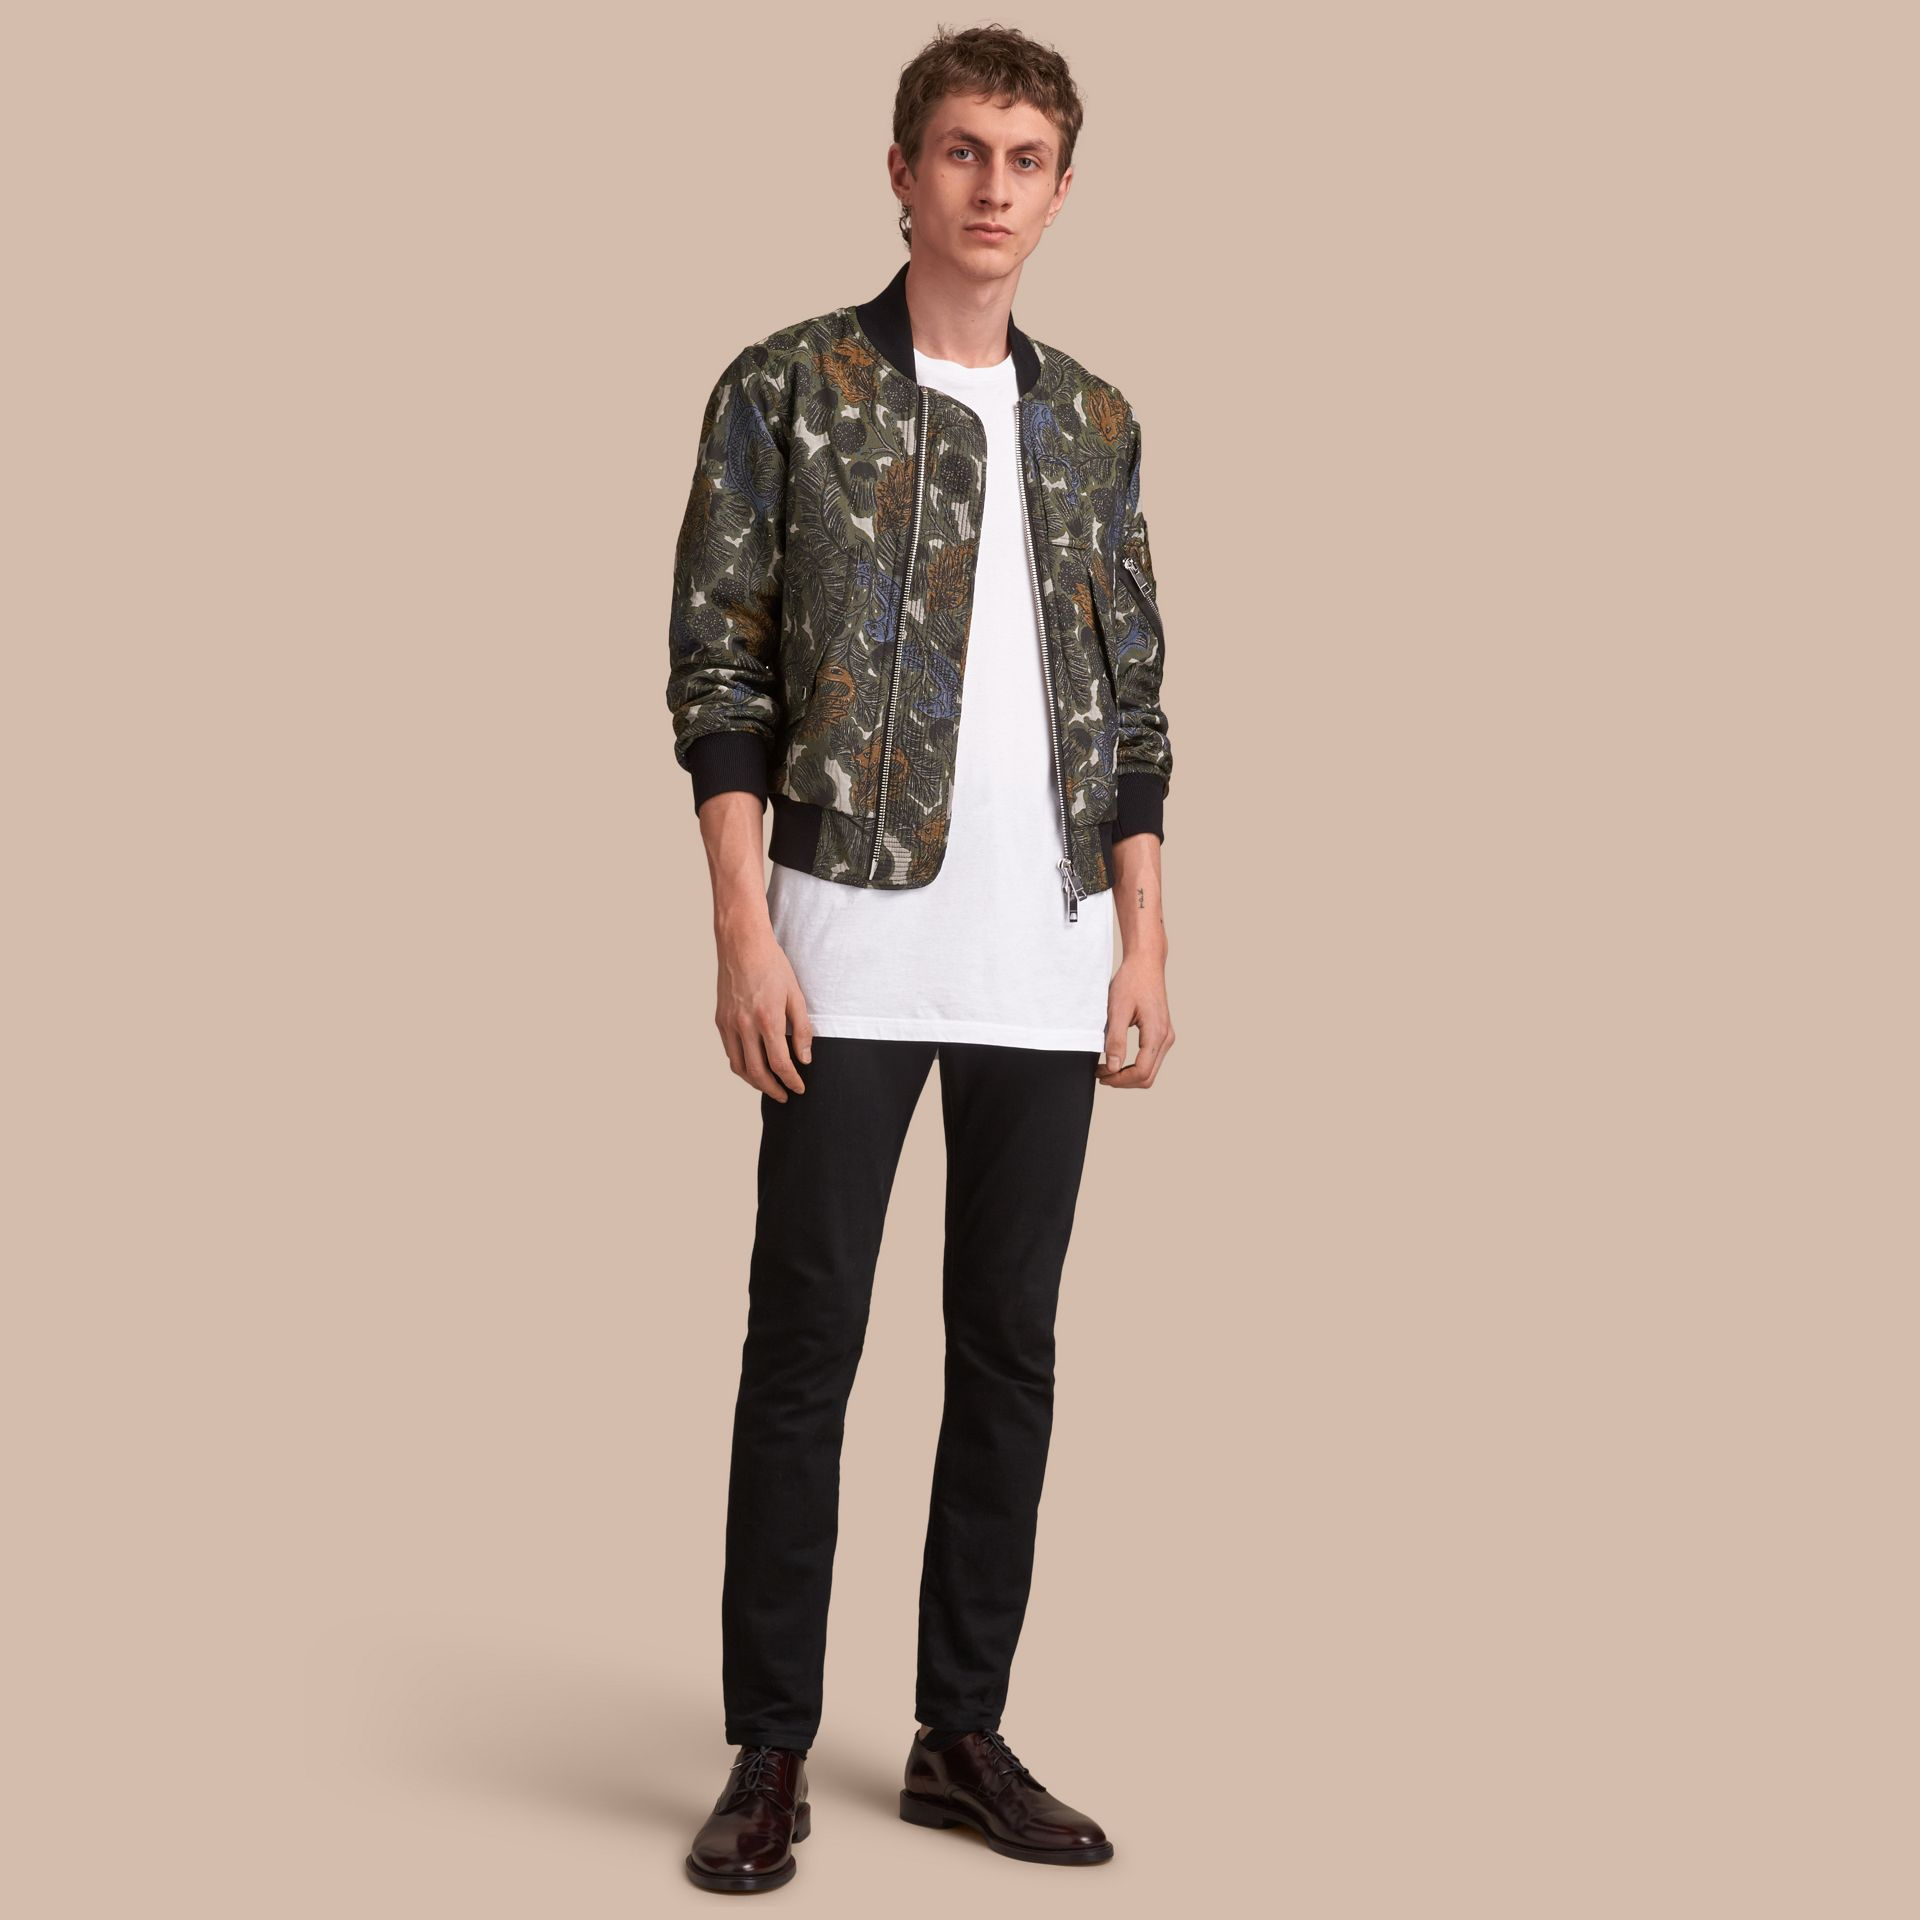 Beasts Print Lightweight Bomber Jacket in Sage Green - Men | Burberry - gallery image 1